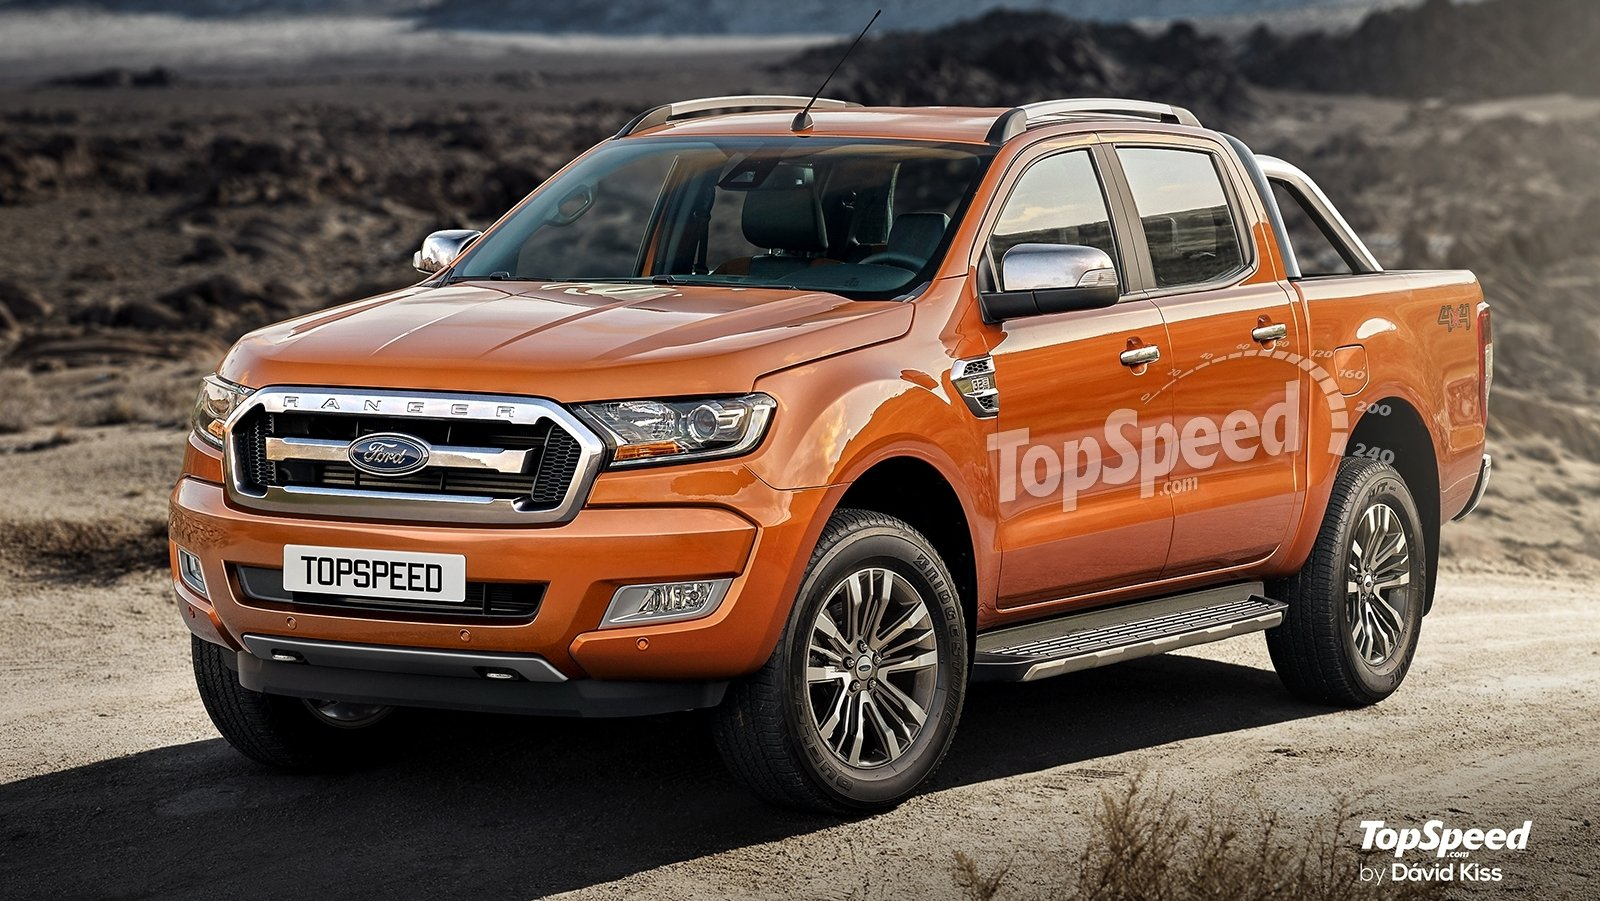 2018 ford ranger picture 679229 truck review top speed. Black Bedroom Furniture Sets. Home Design Ideas